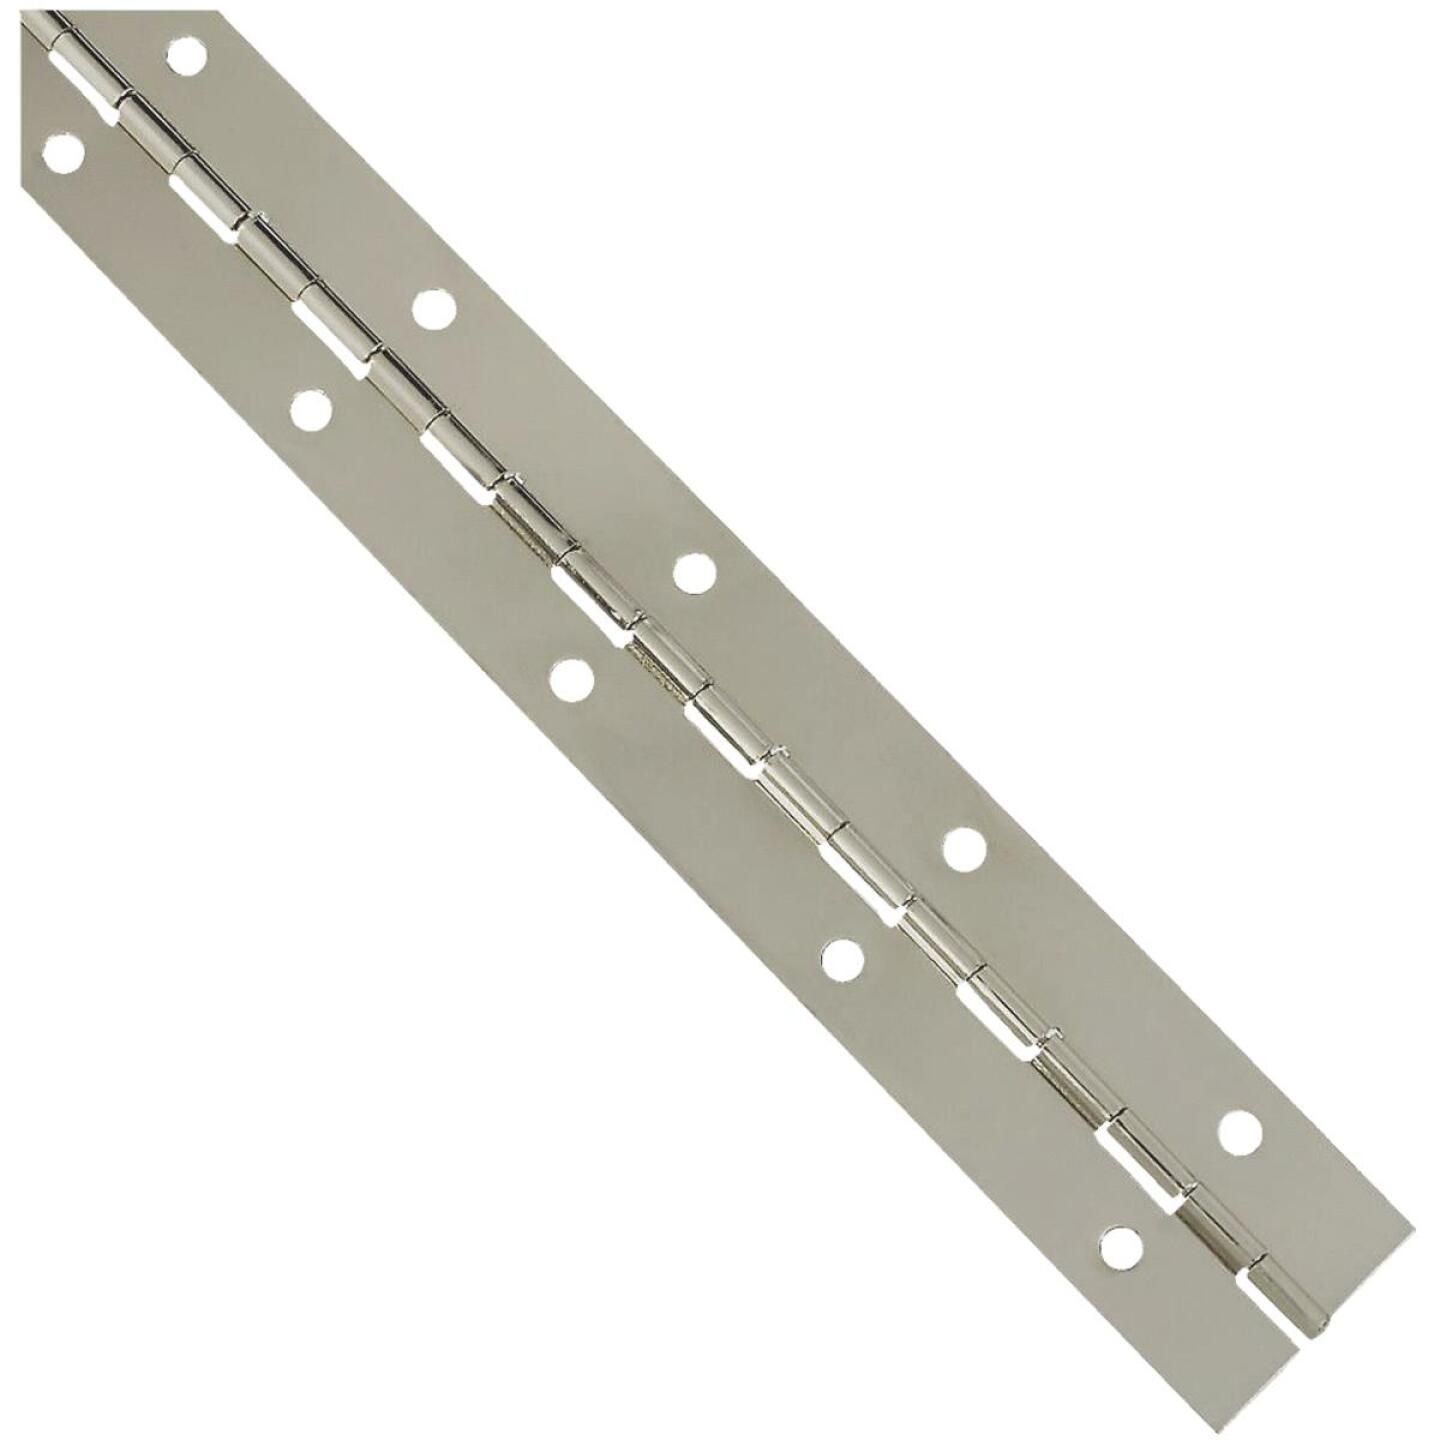 National Steel 1-1/2 In. x 12 In. Nickel Continuous Hinge Image 1